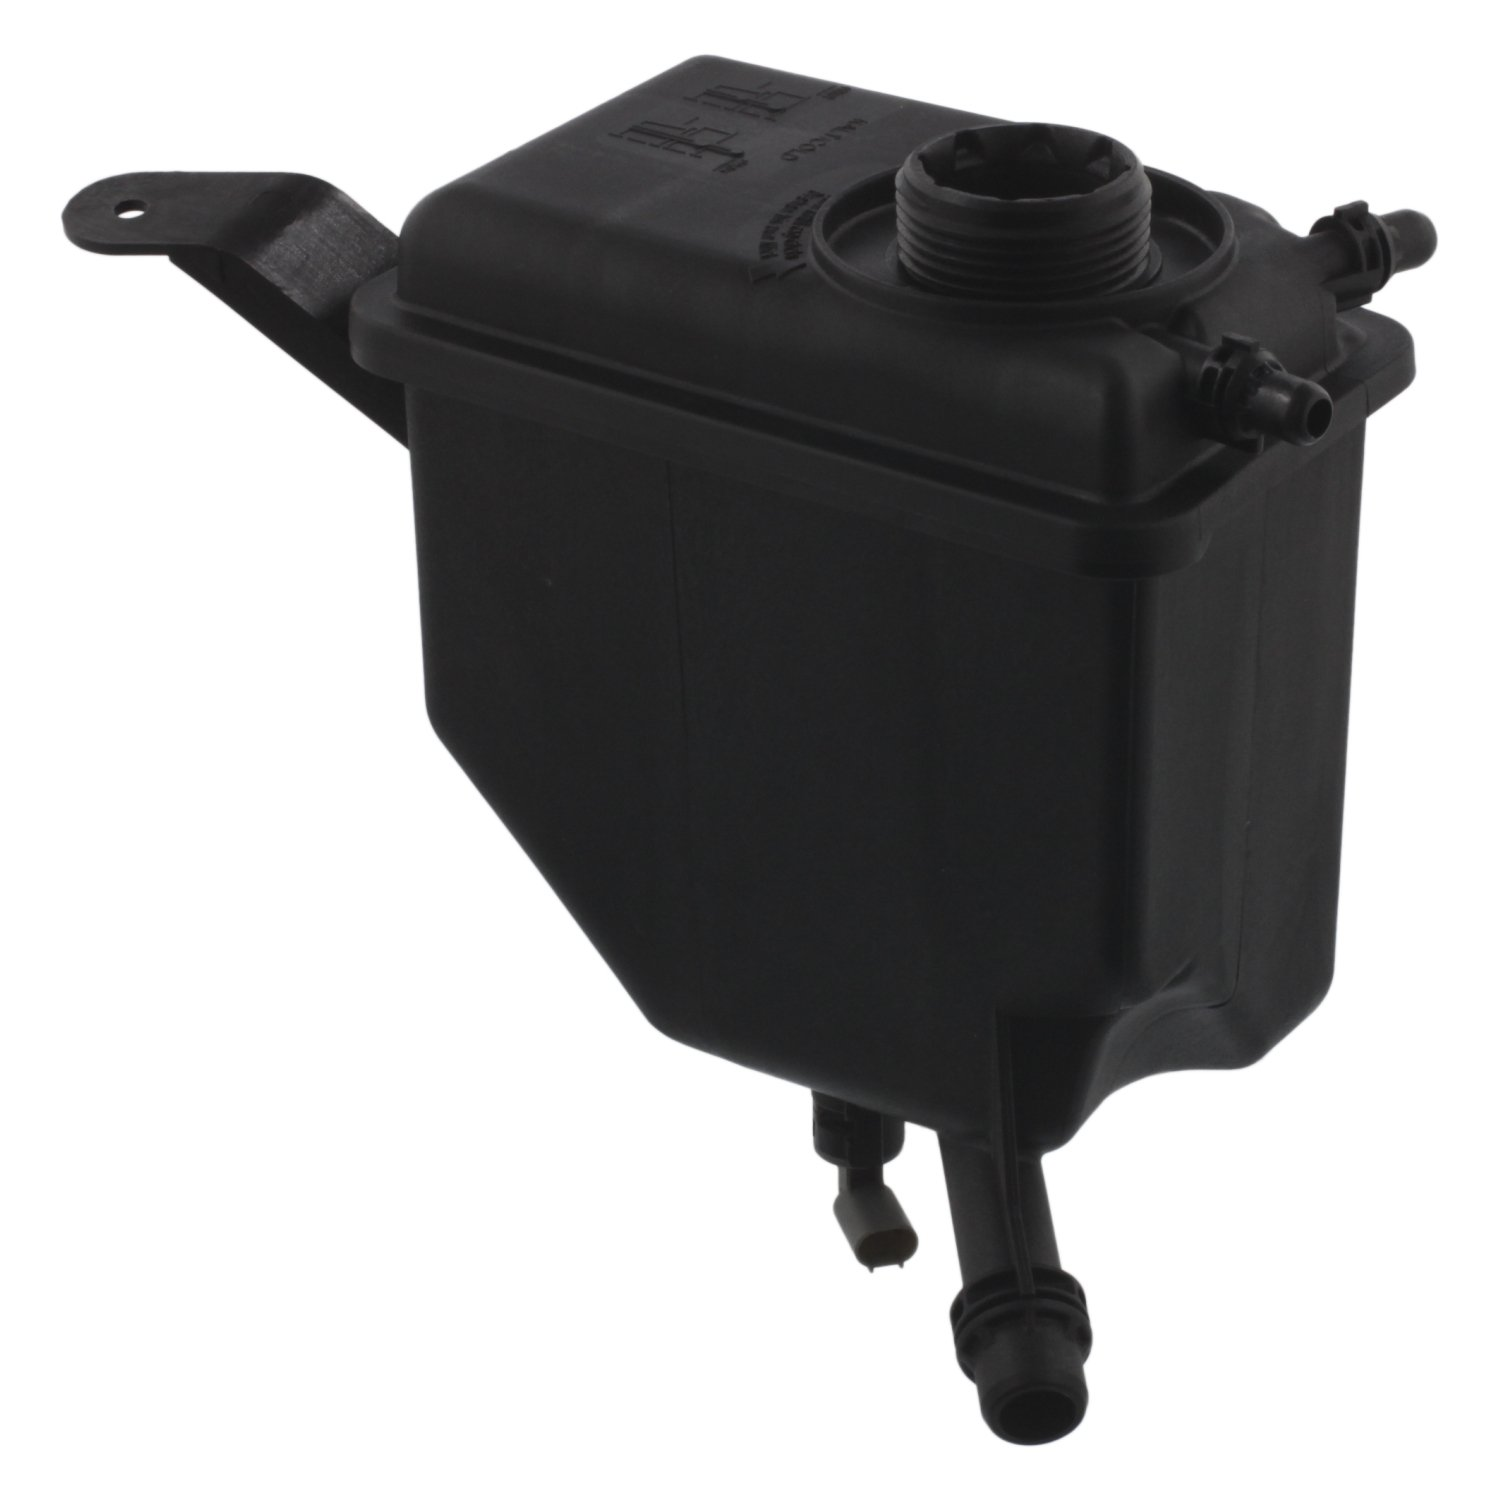 febi bilstein 38624 coolant expansion tank with sensor - Pack of 1